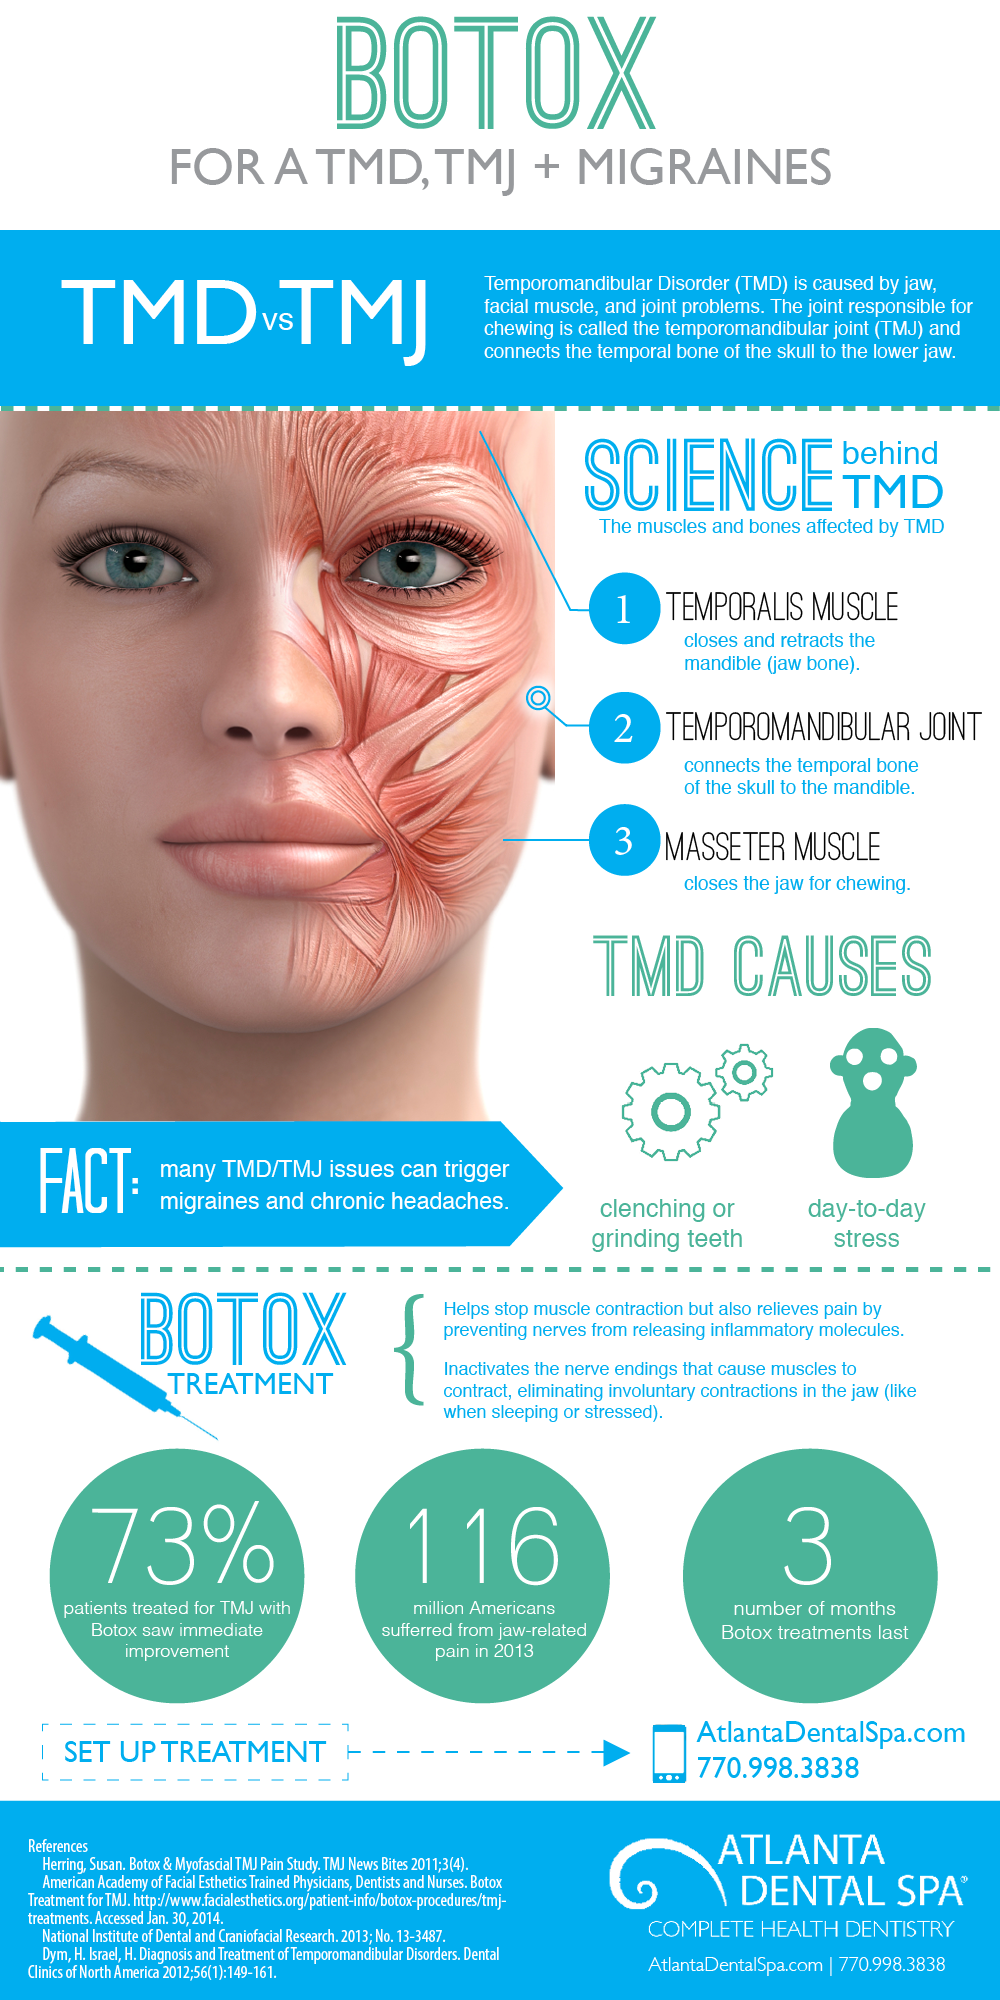 Treat Tmj With Botox Treat Migraines With Botox Botox Migraine Headache Treatment Botox Injections